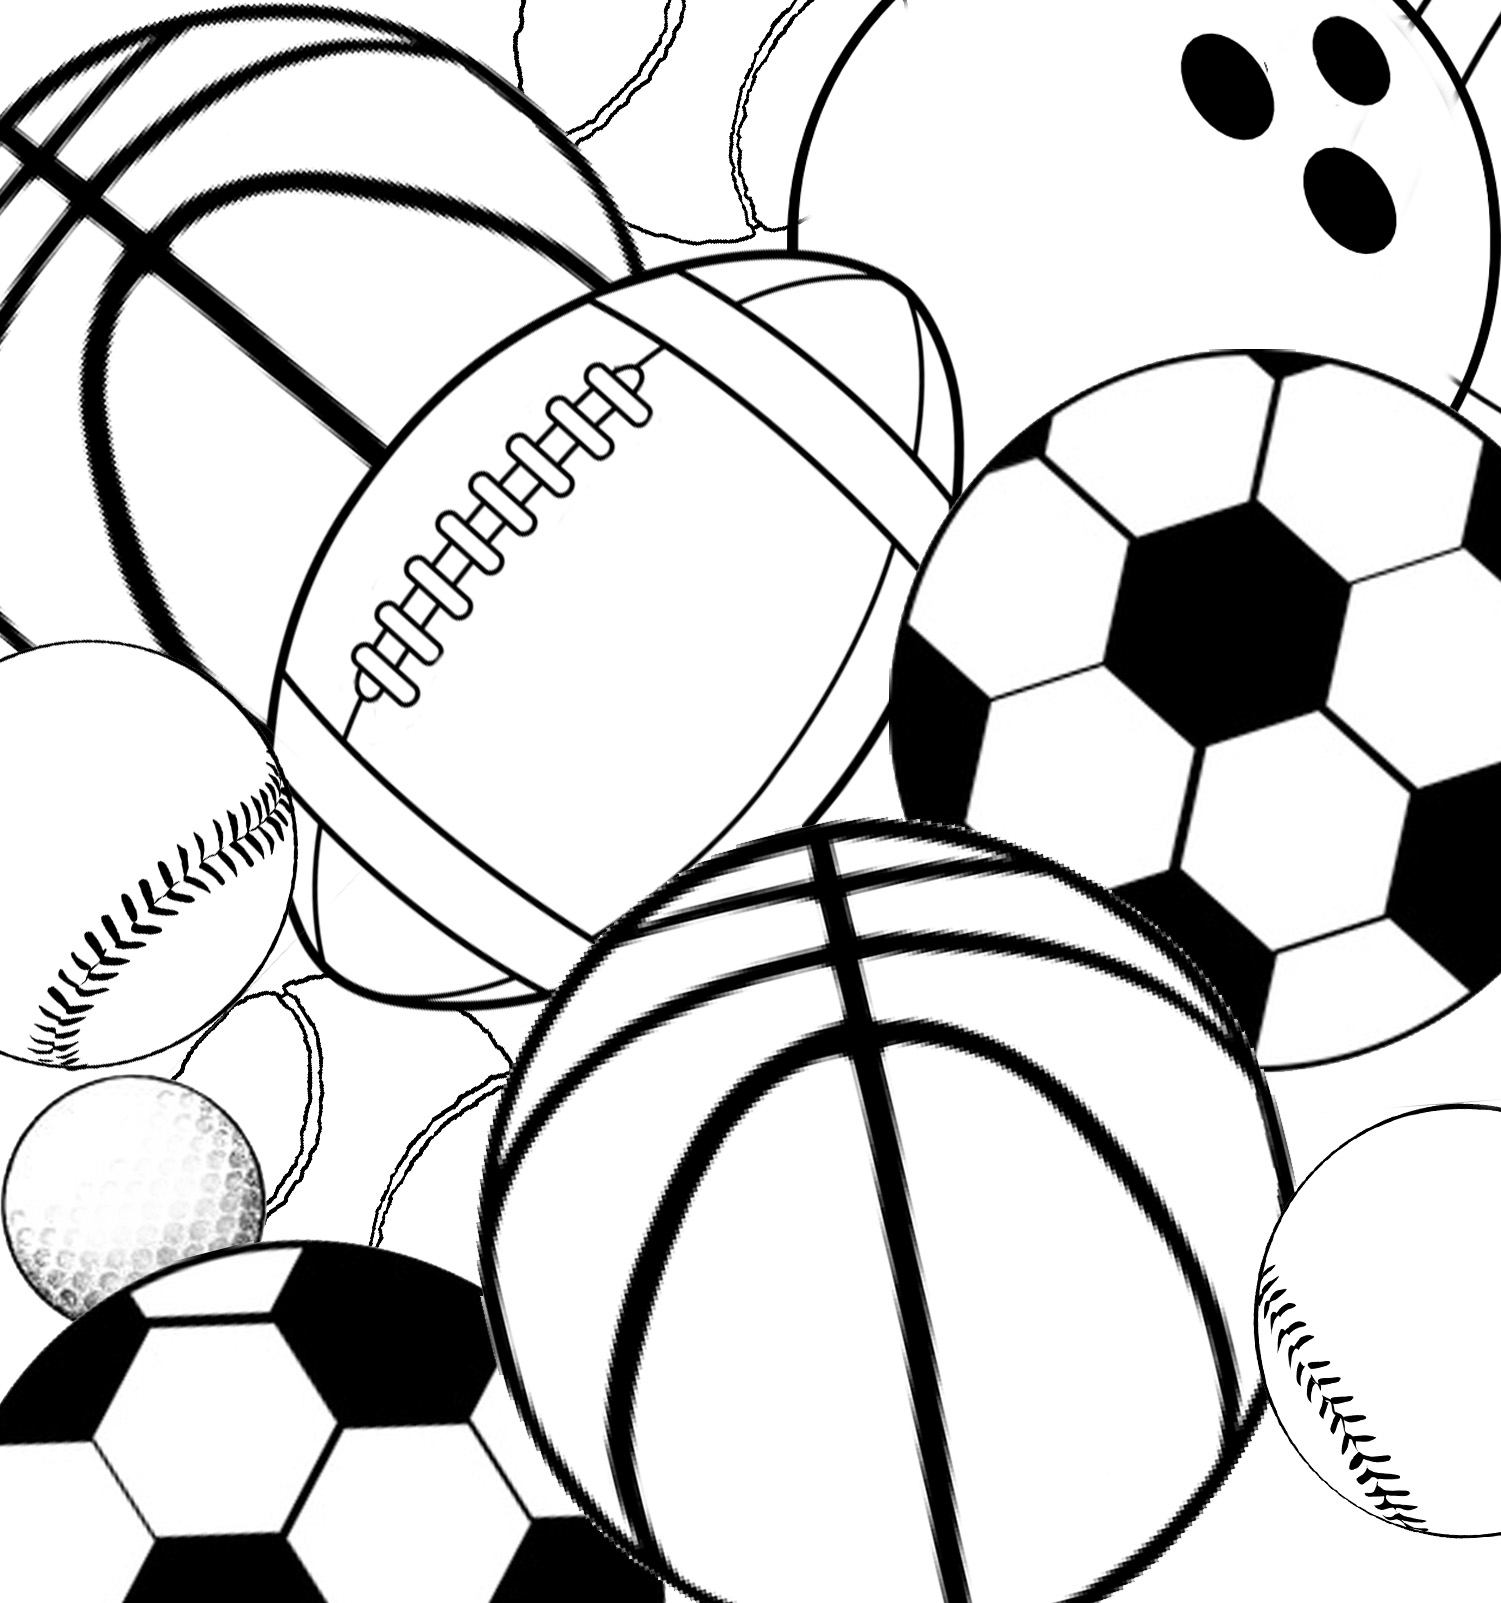 Disability Awareness Coloring Pages Coloring Pages